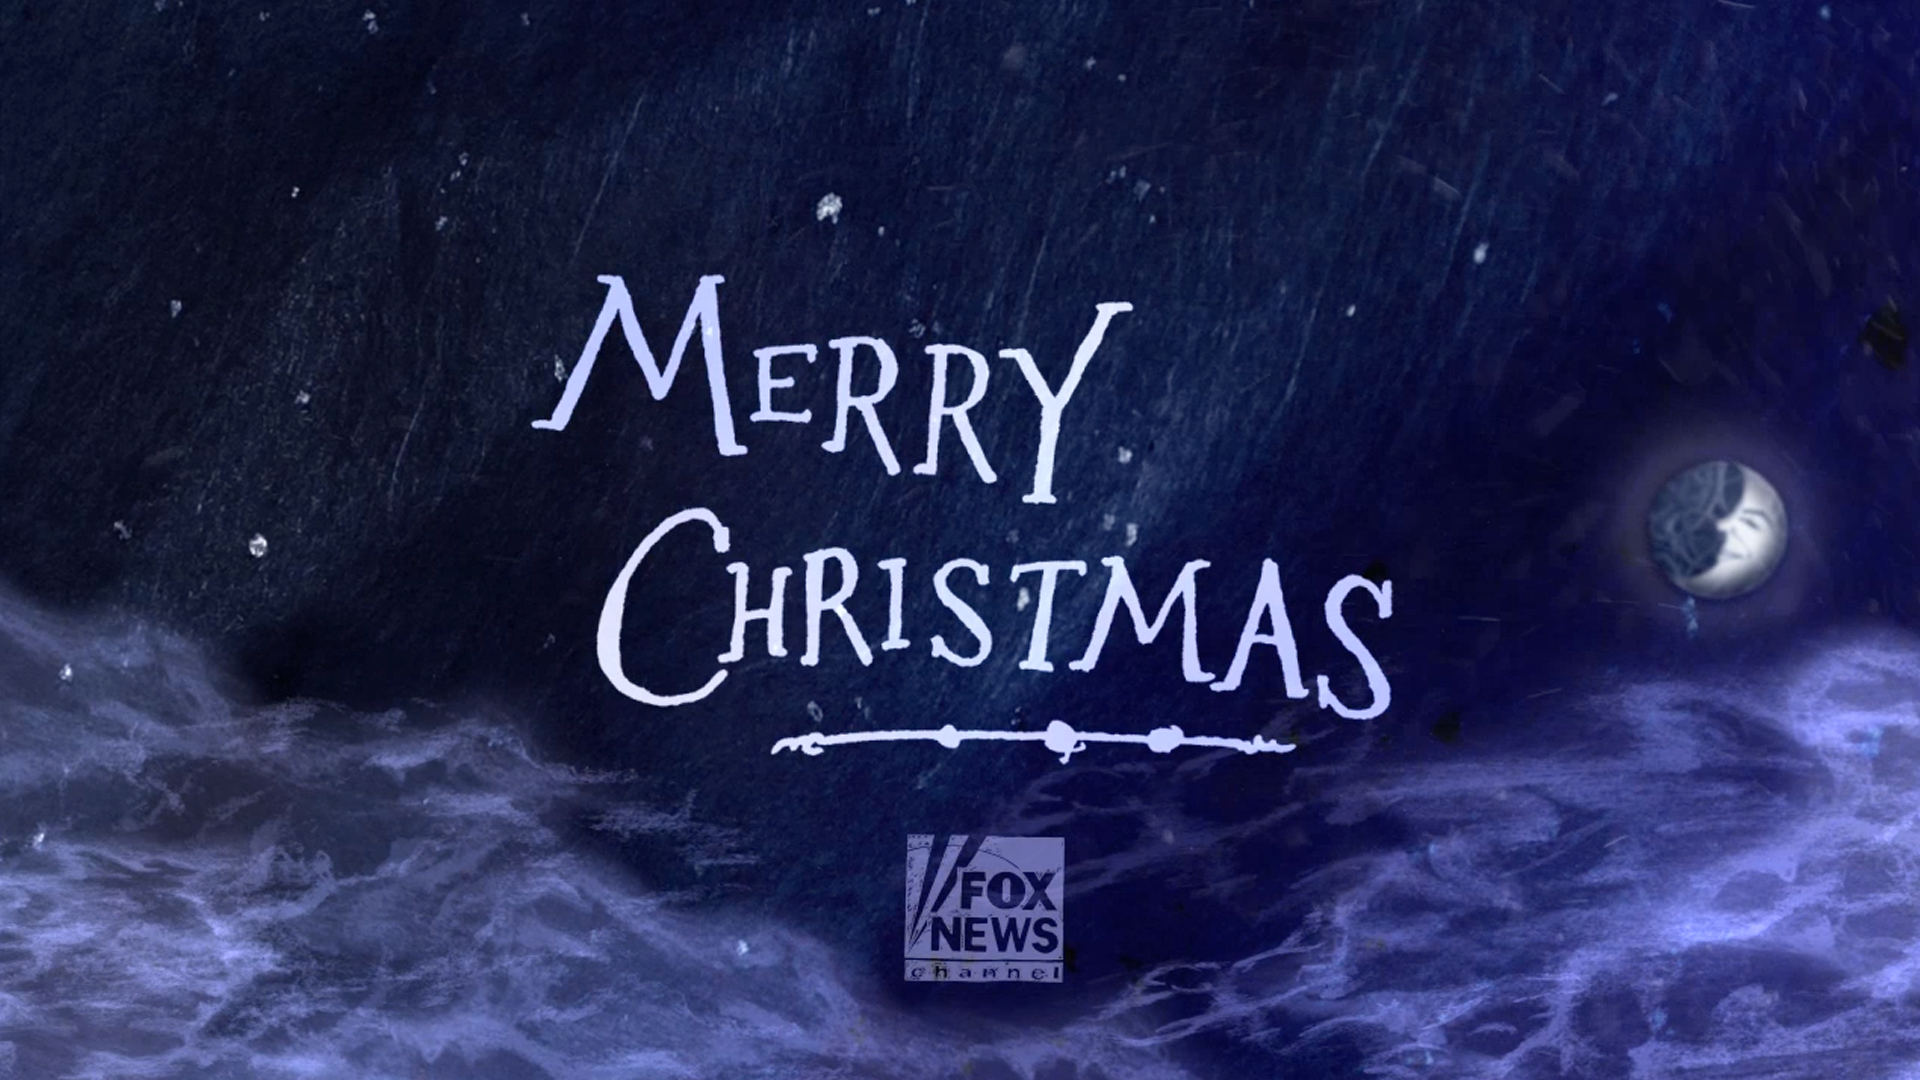 National Television Commercial - Holiday Series. Fox News Channel 2010.